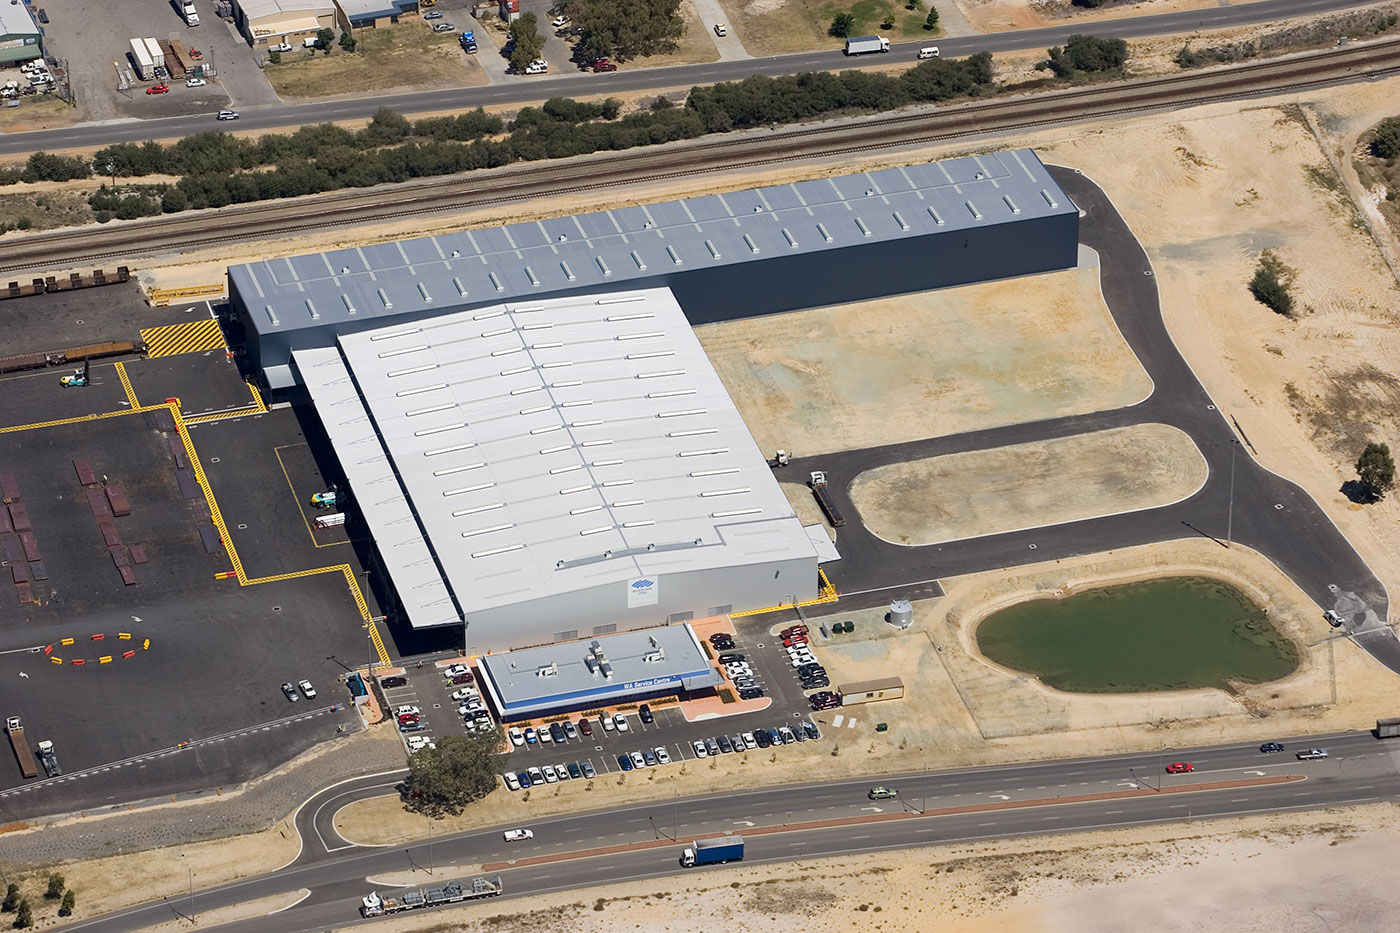 BlueScope Steel Process Facility : Image 2